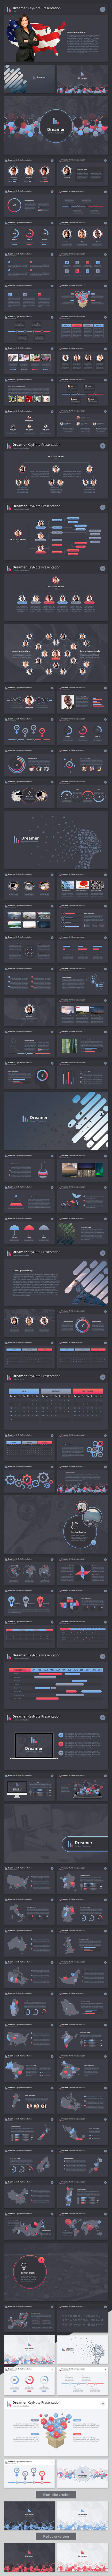 Dreamer PowerPoint and/or Keynote presentation template design from GraphicRiver.